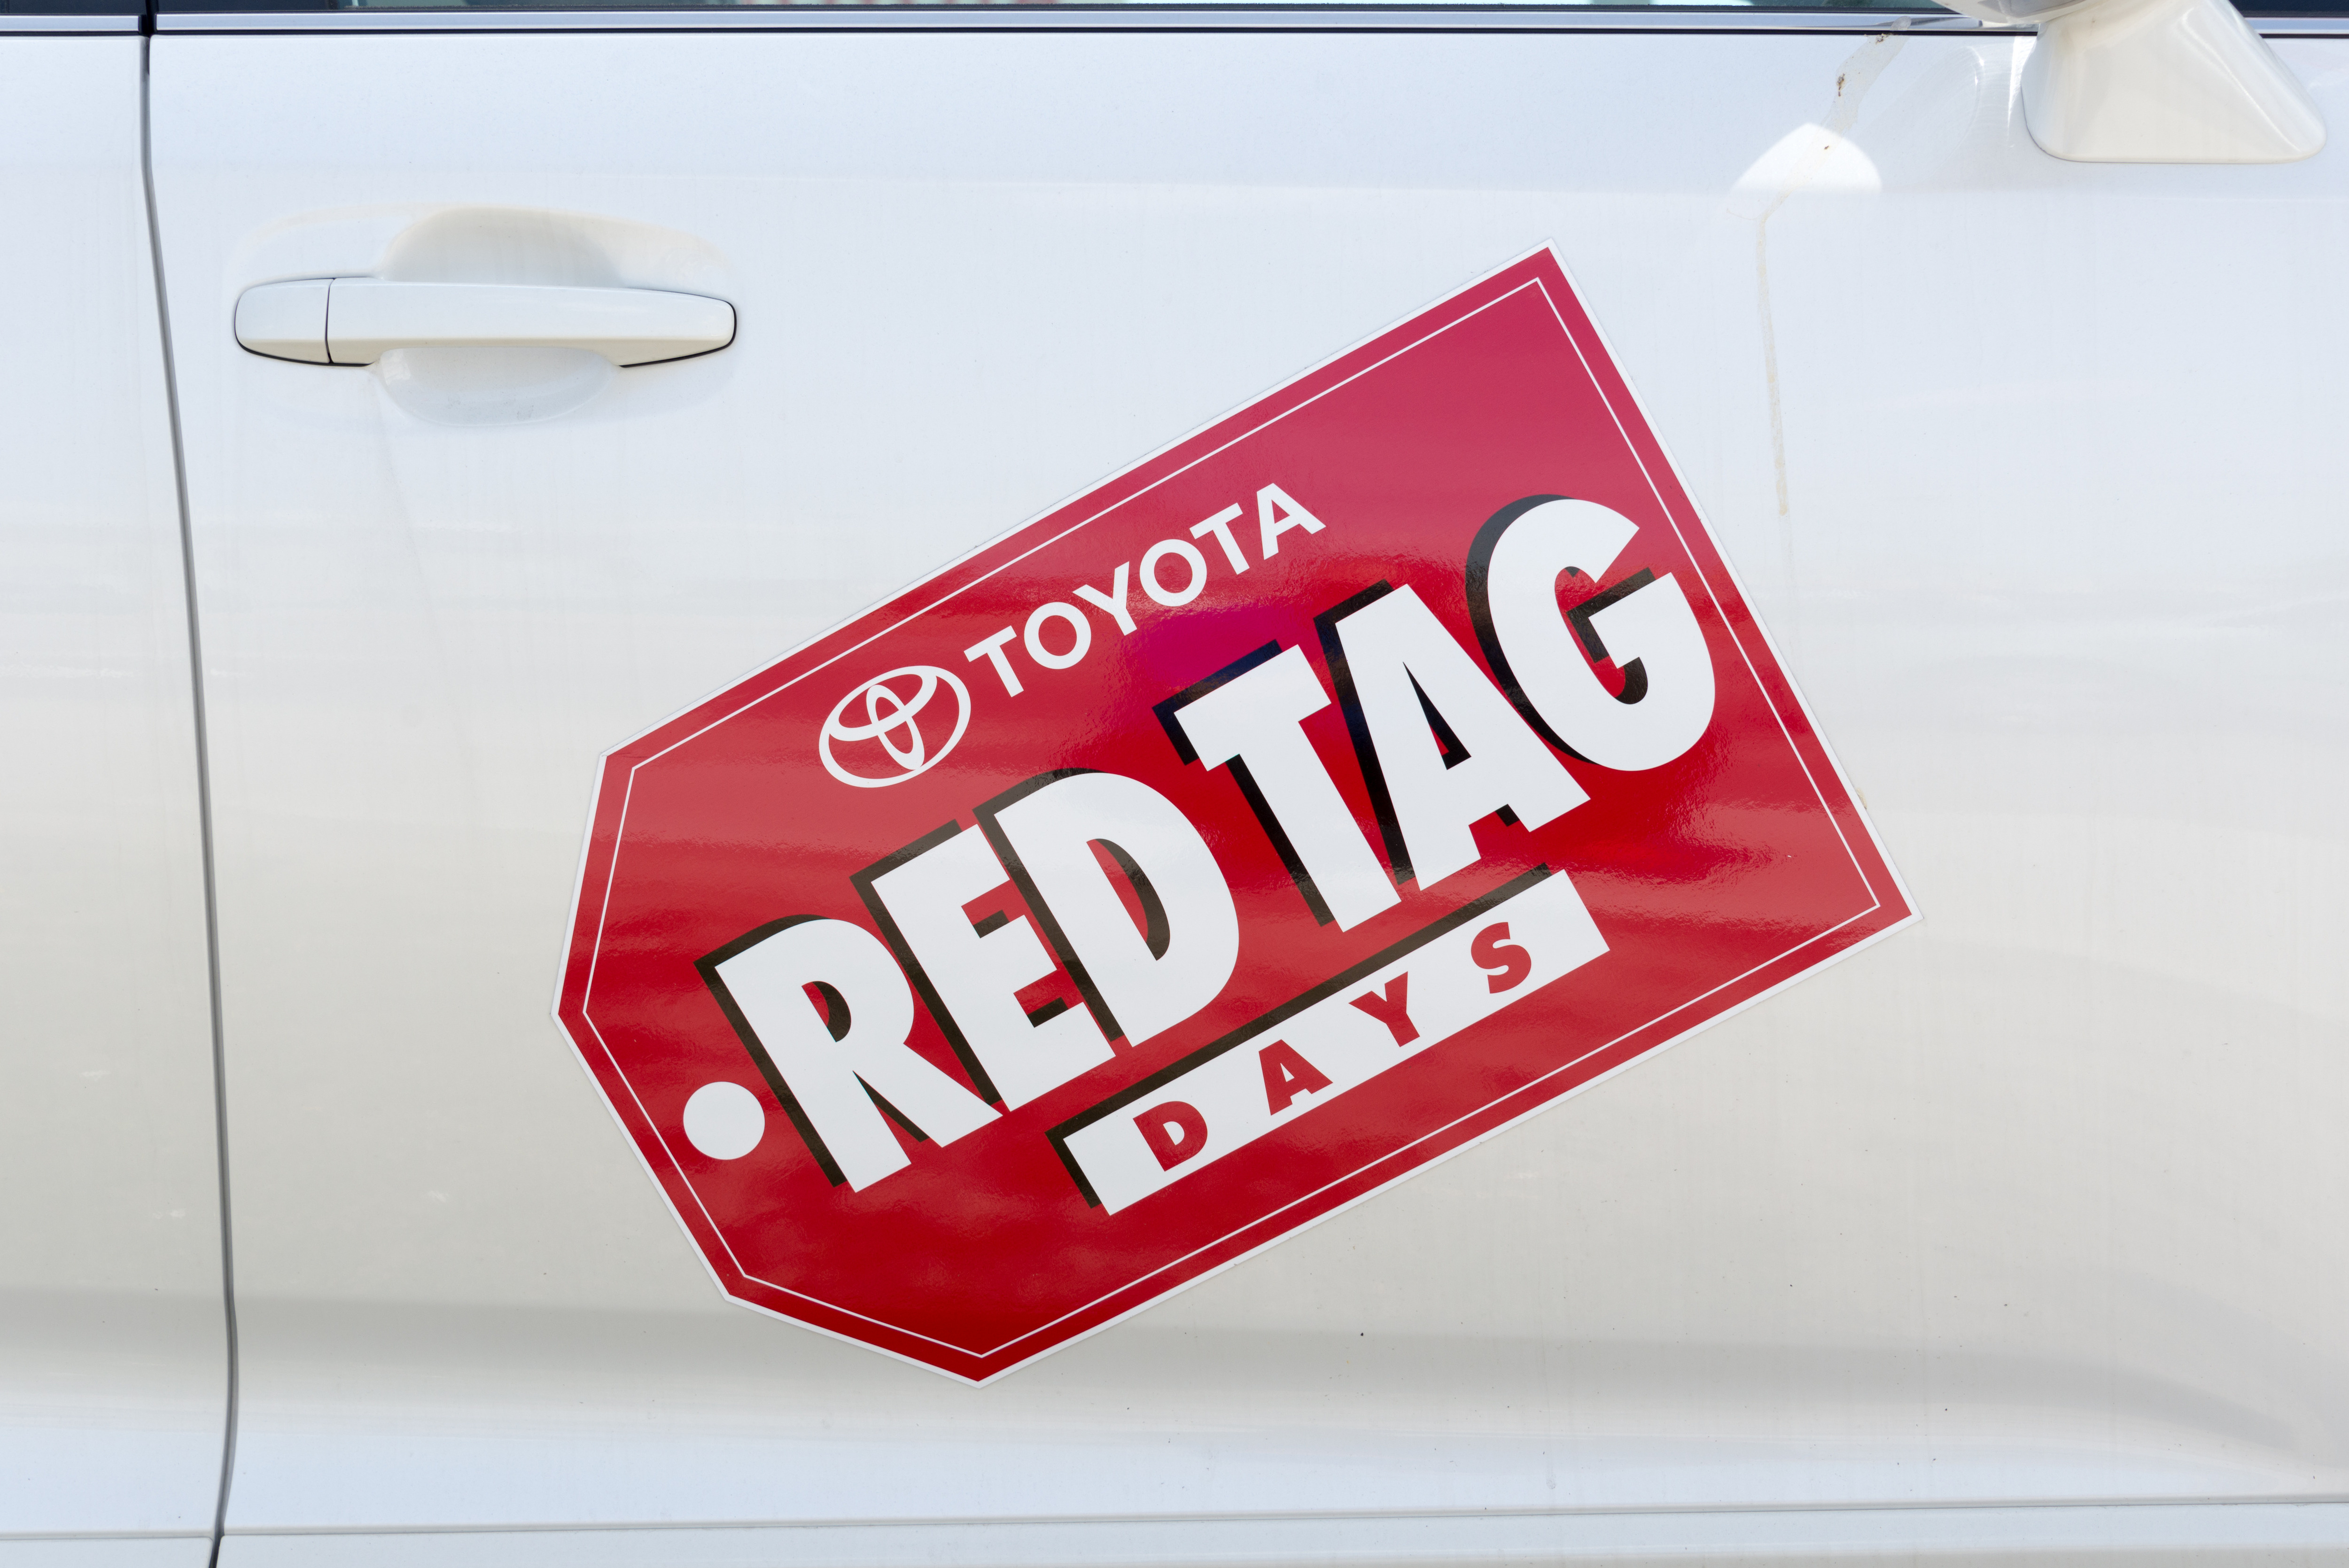 Toyota Red Tag Days sale sticker shown on passenger door of